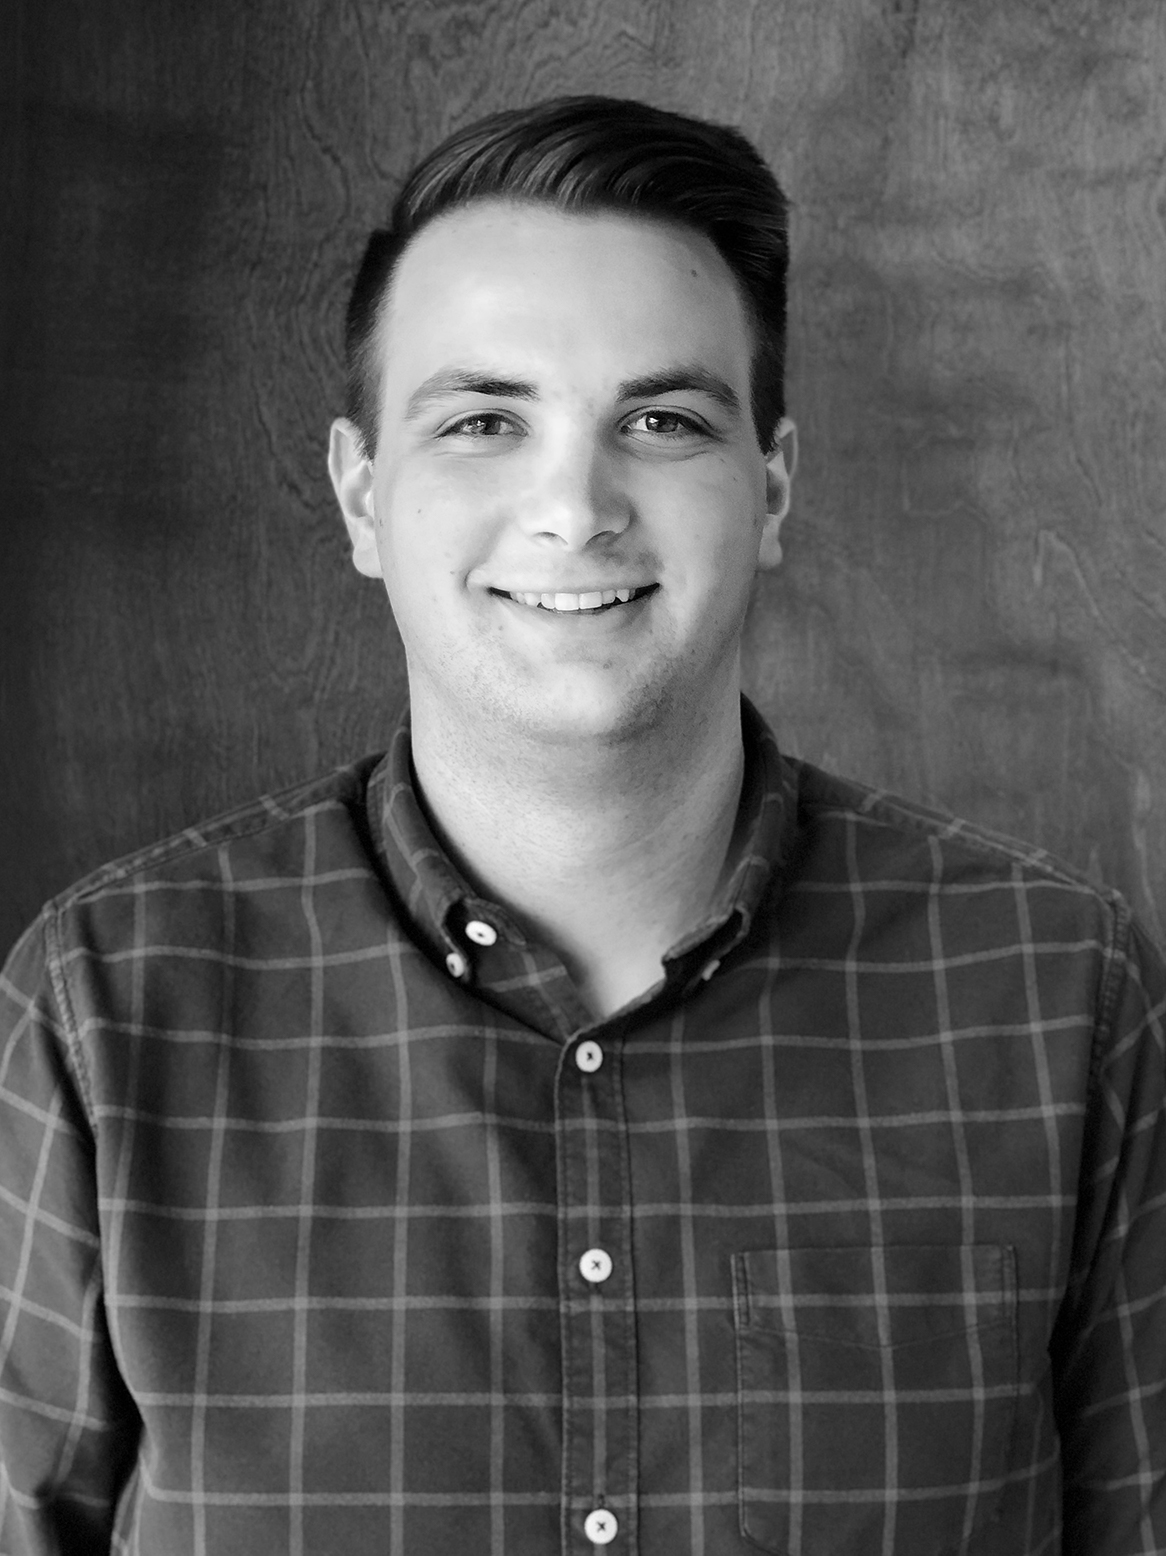 MATTHEW ELLIOTT - Assoc. IIDAmelliott@plagemanarchitecture.comOriginally from North Myrtle Beach, SC, Matthew relocated to the Triad to pursue a future in design. A graduate of the Interior Architecture program at UNC-Greensboro, he's happy to put his design skills to work. Beginning with adolescent interests in culinary arts and graphic design, Matthew has focused his creative thinking on the built environment and understanding how design impacts the lives of others. With an inside-out approach to designing interiors, Matthew loves discovering the best fit for the puzzle pieces of a space. In his free time, he enjoys travelling to see friends and family, volunteering and finding new areas to apply his creativity.